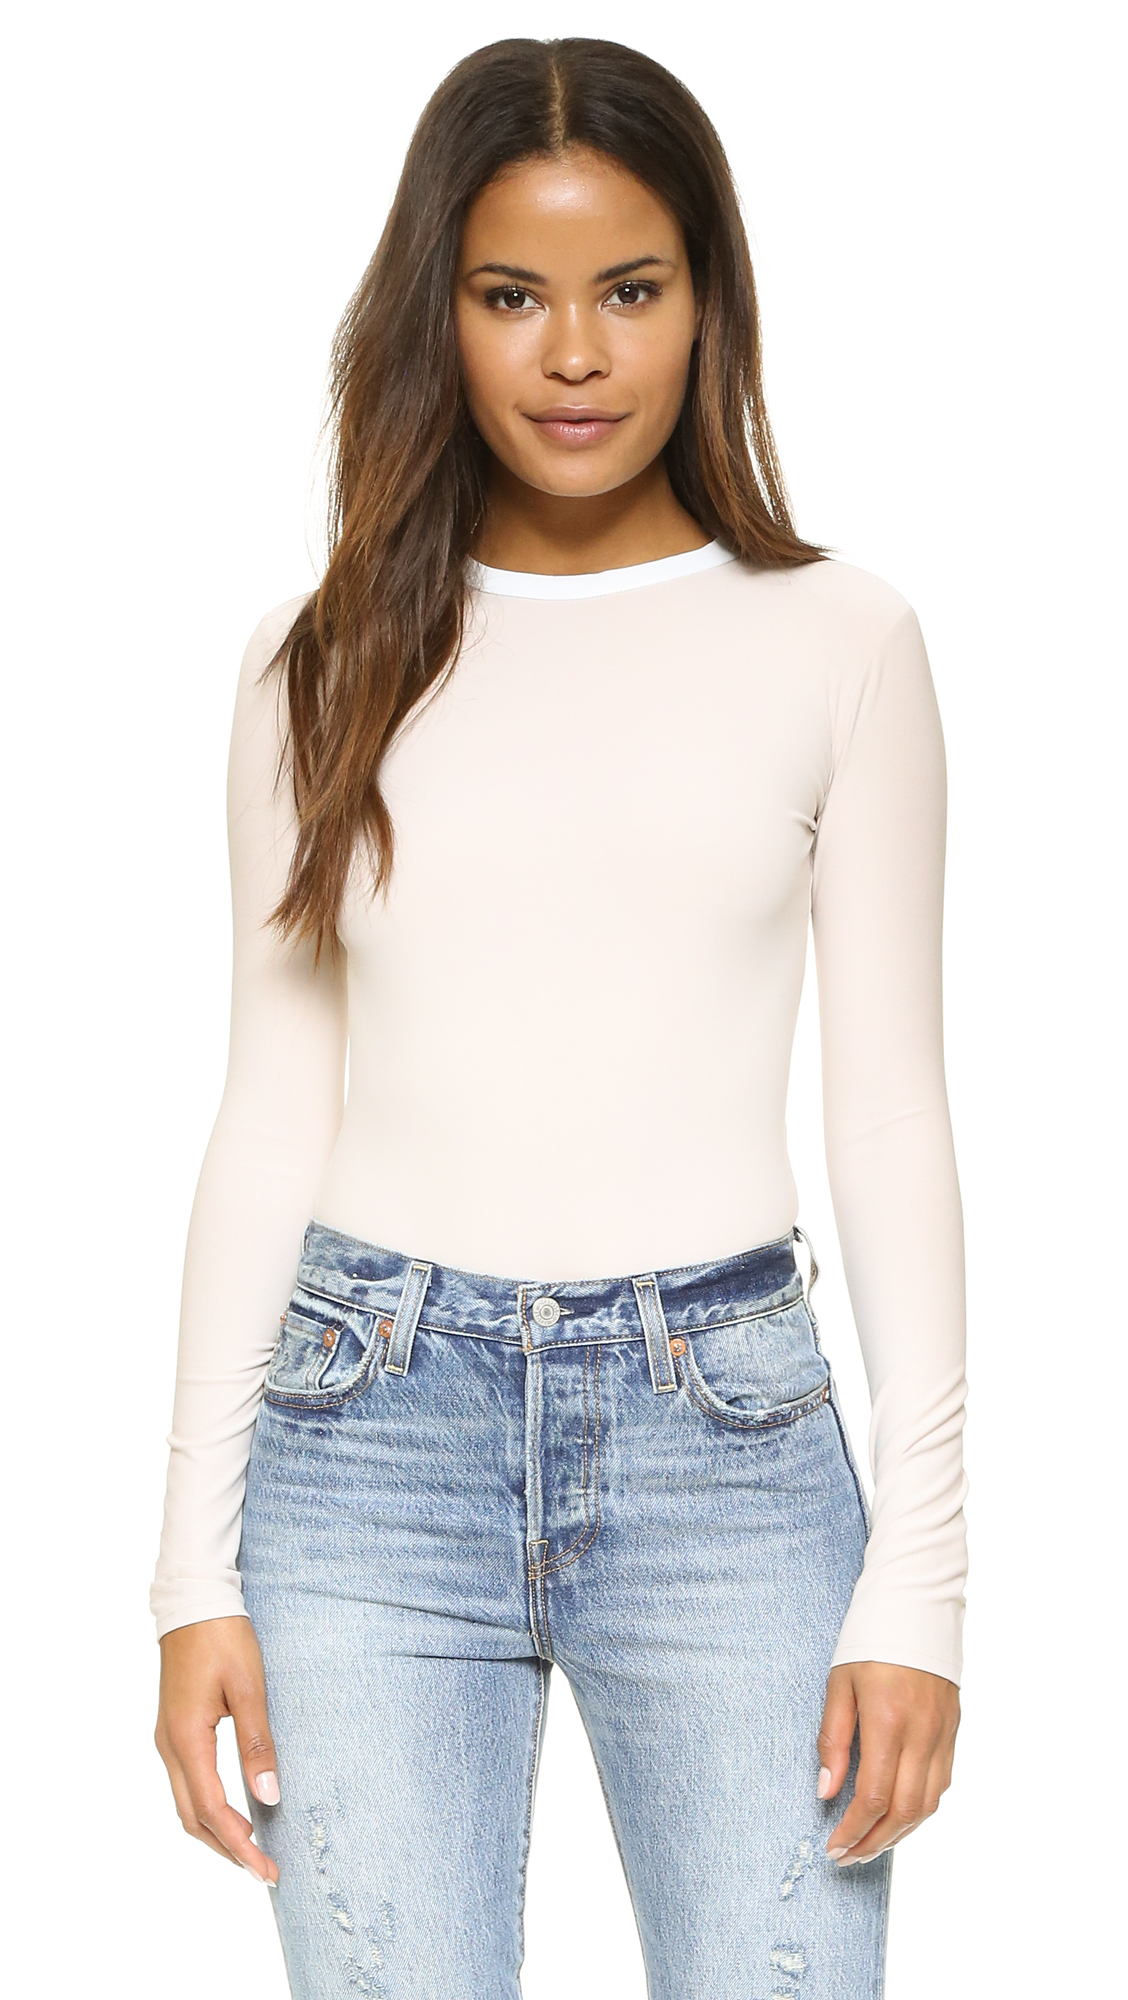 Alix Classic Collection Chloe Thong Bodysuit - Nude/White at Shopbop